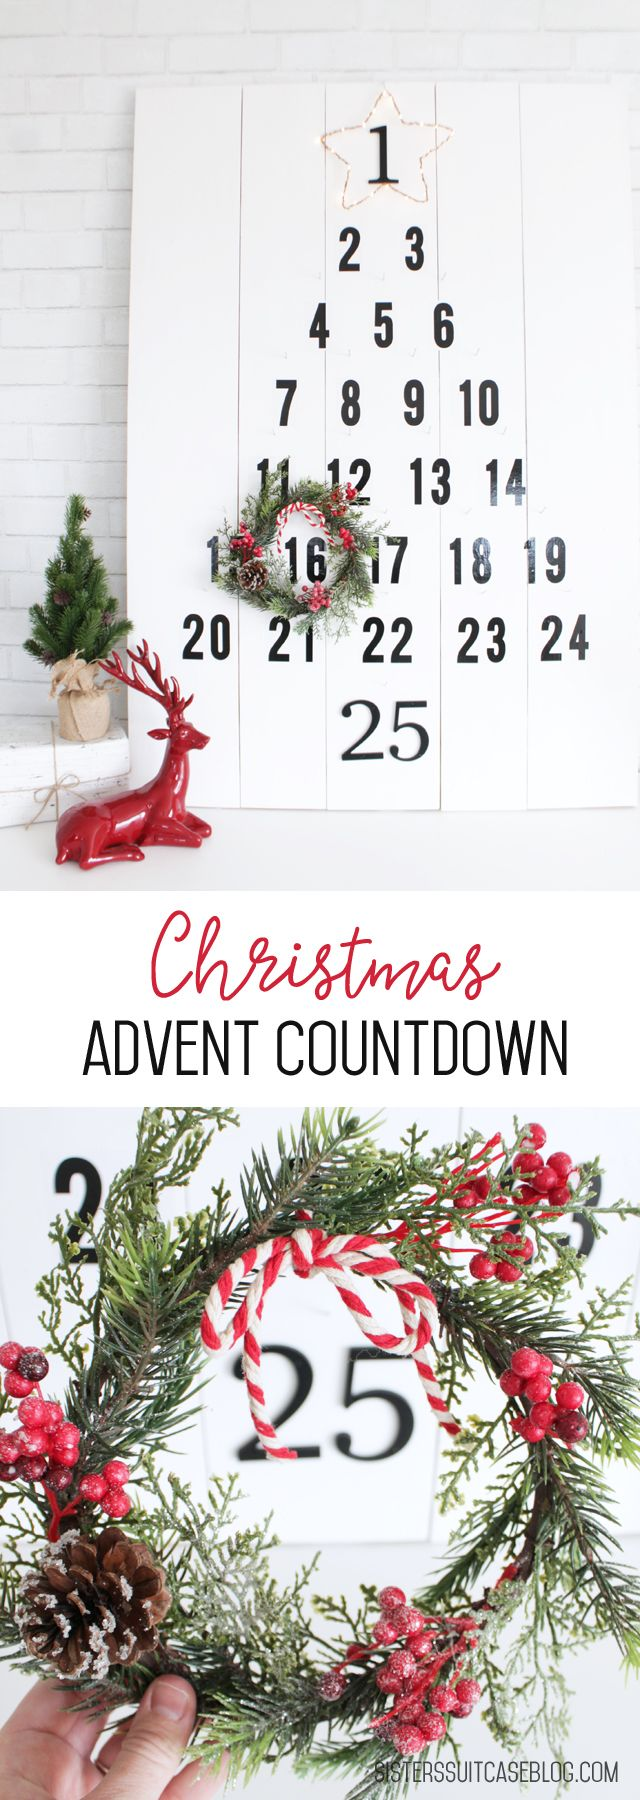 Christmas Advent Countdown | Christmas Crafts | Christmas, Christmas ...